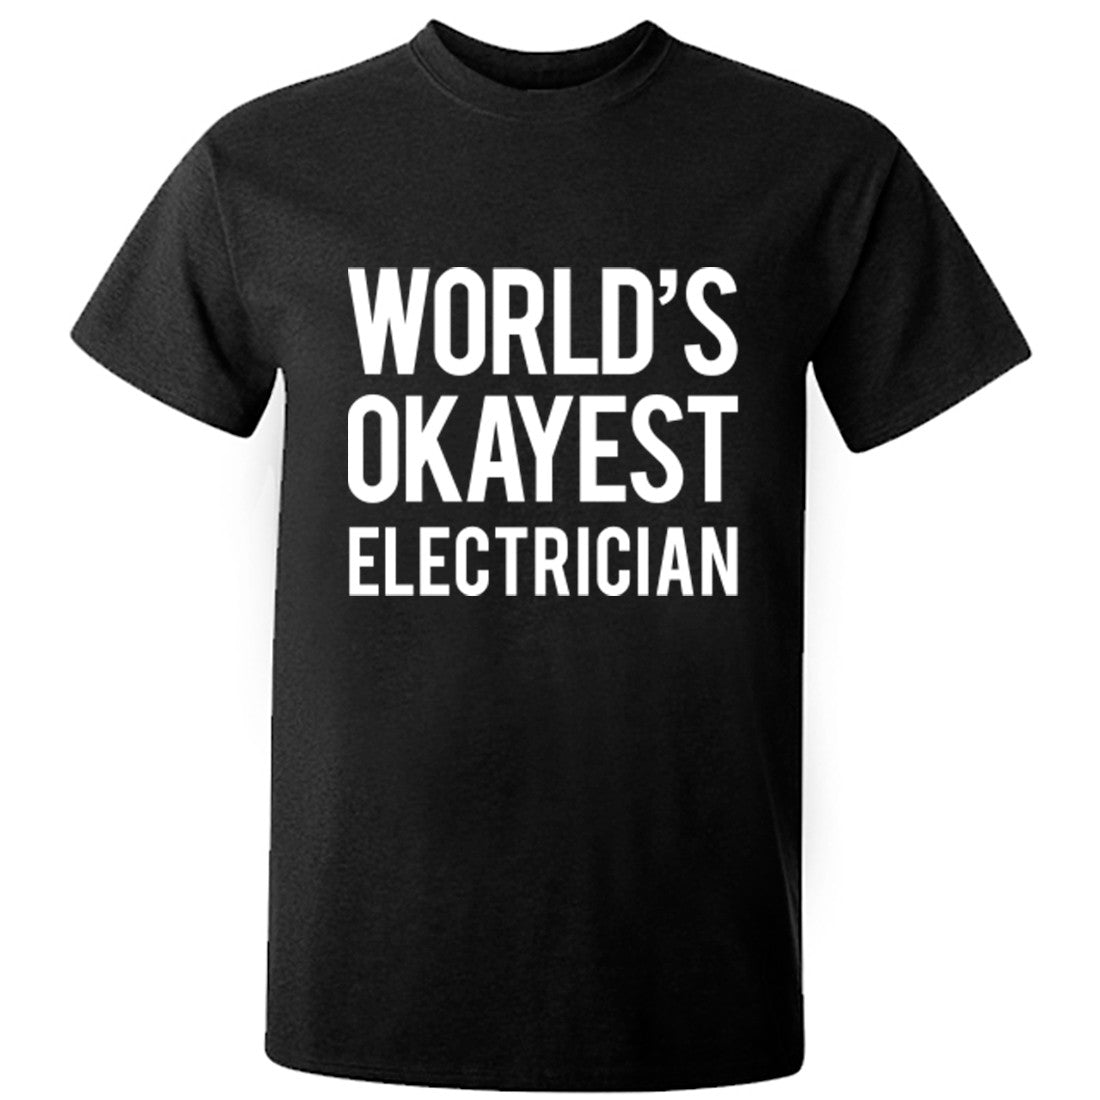 Worlds Okayest Electrician Unisex Fit T-Shirt K0506 - Illustrated Identity Ltd.